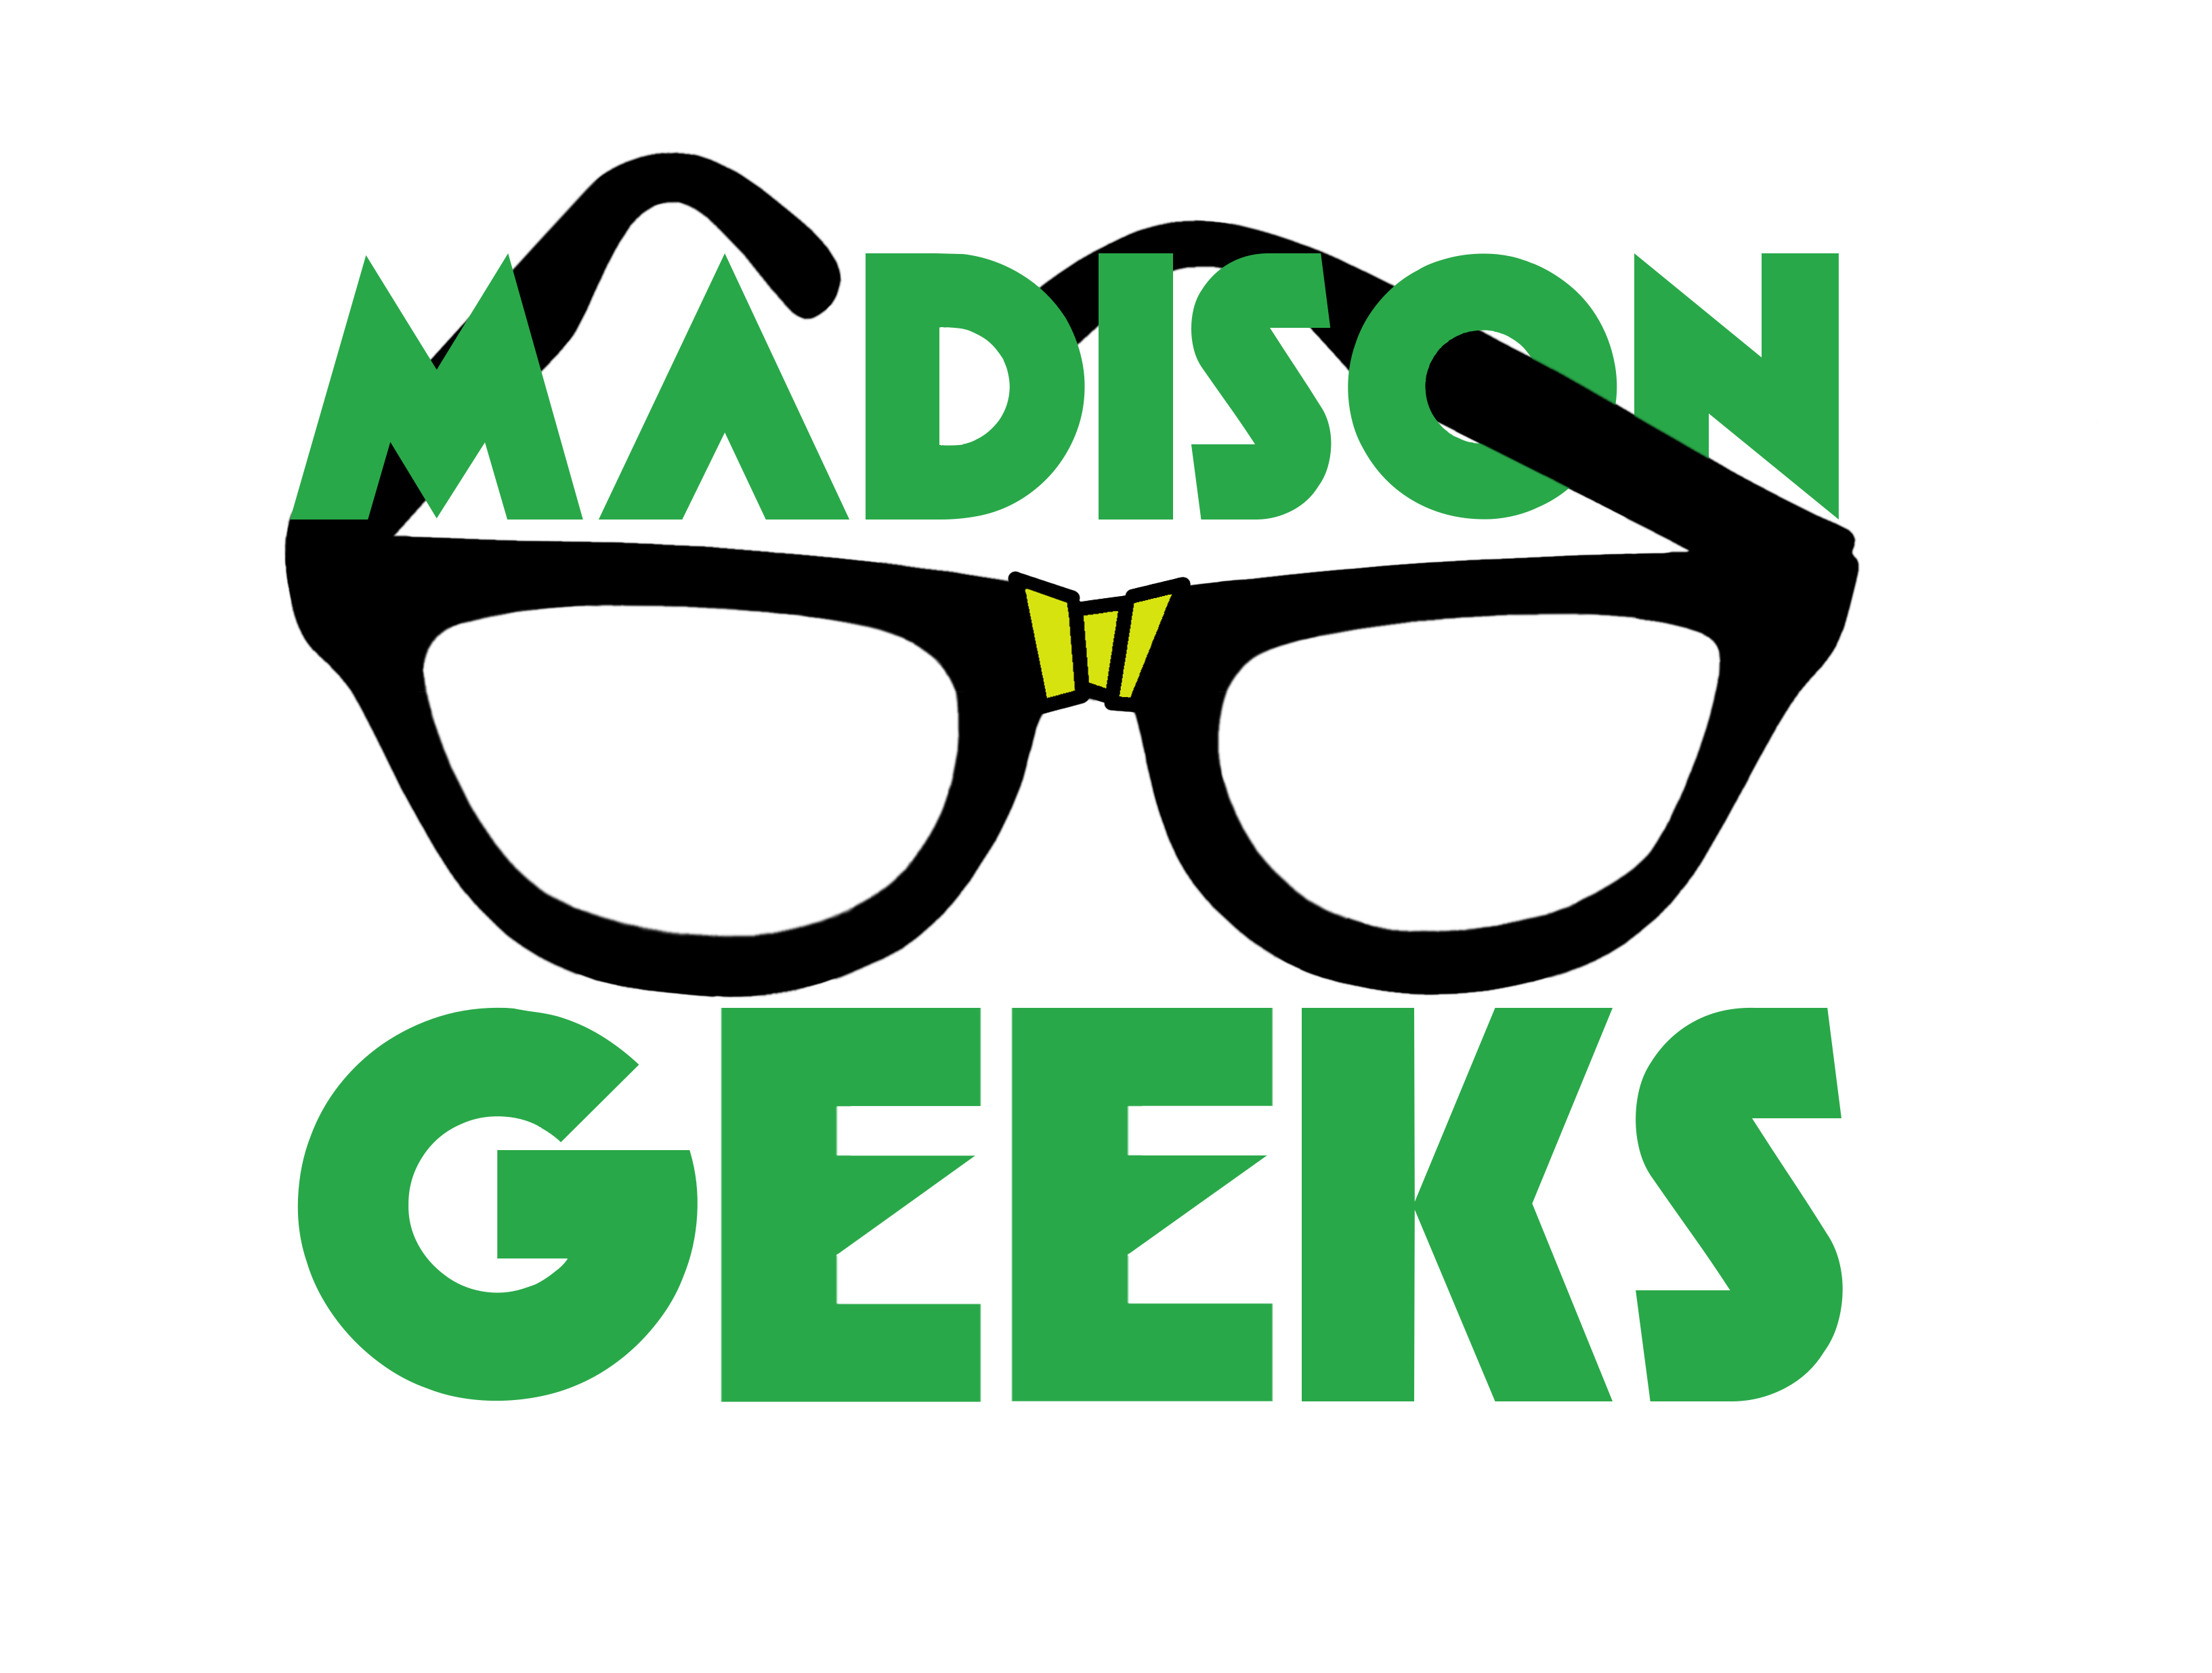 Madison Geeks Group